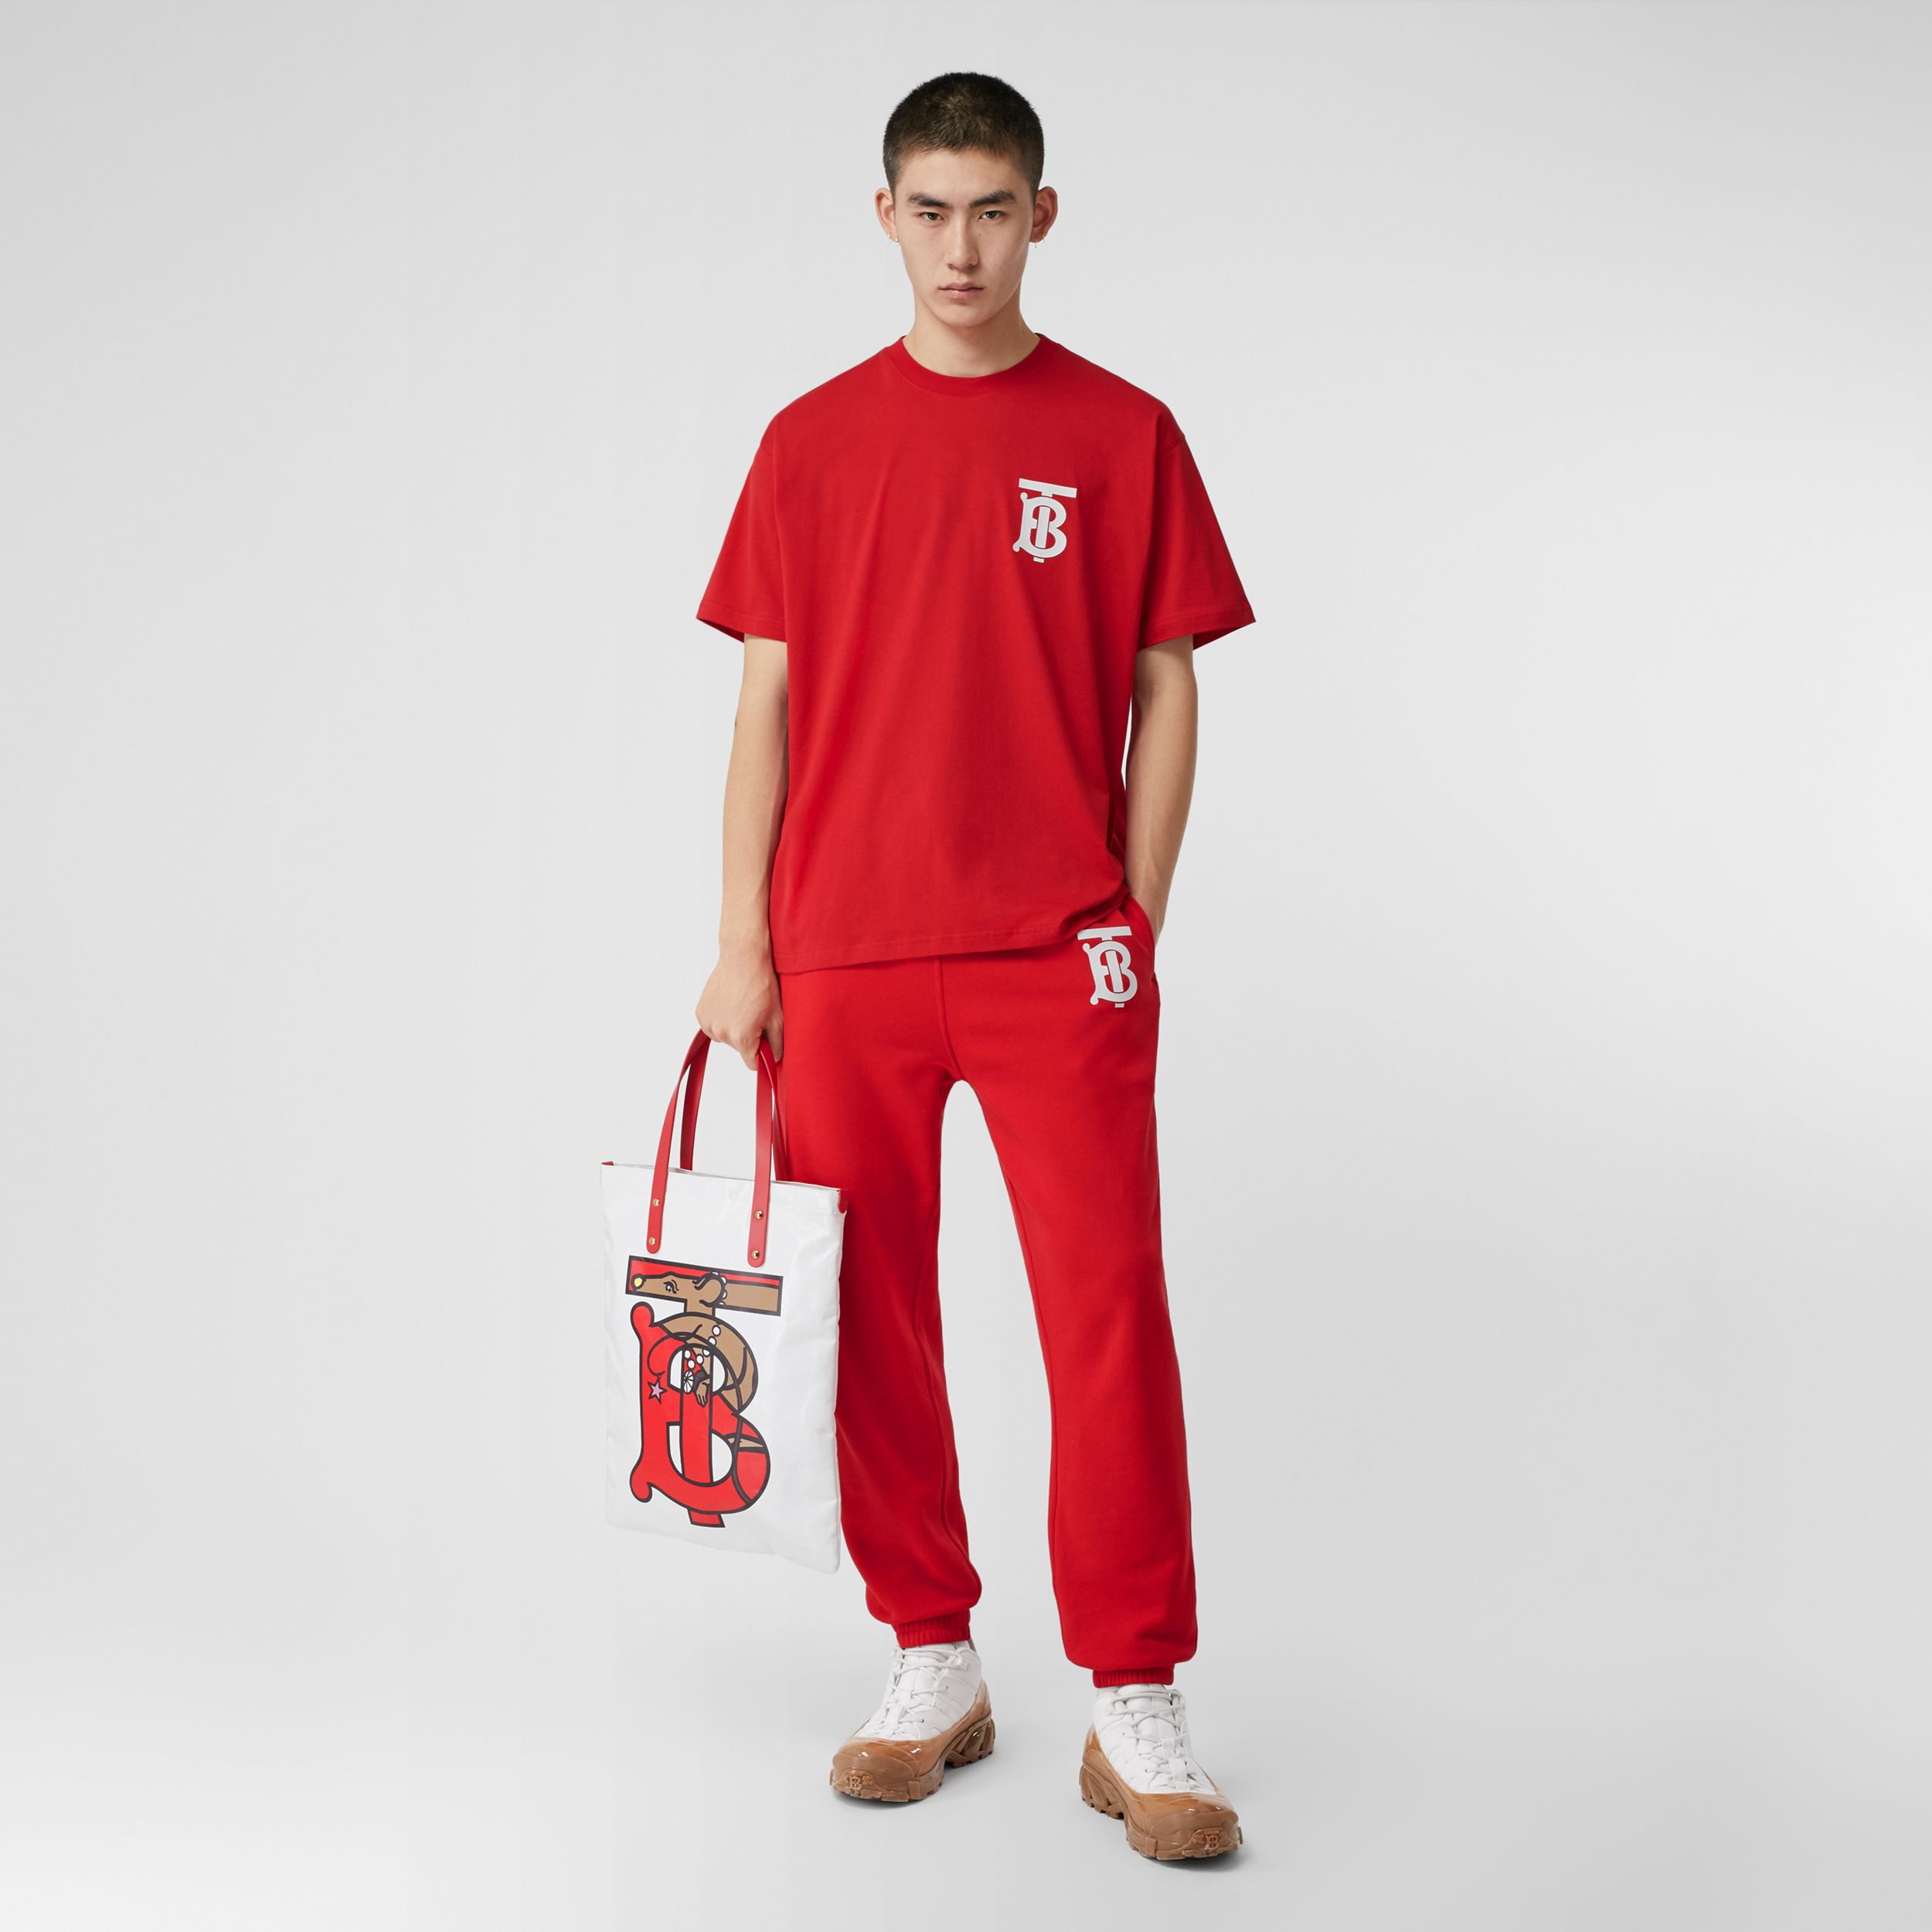 Monogram Motif Cotton Oversized T-shirt in Bright Red - Men | Burberry United Kingdom - 1